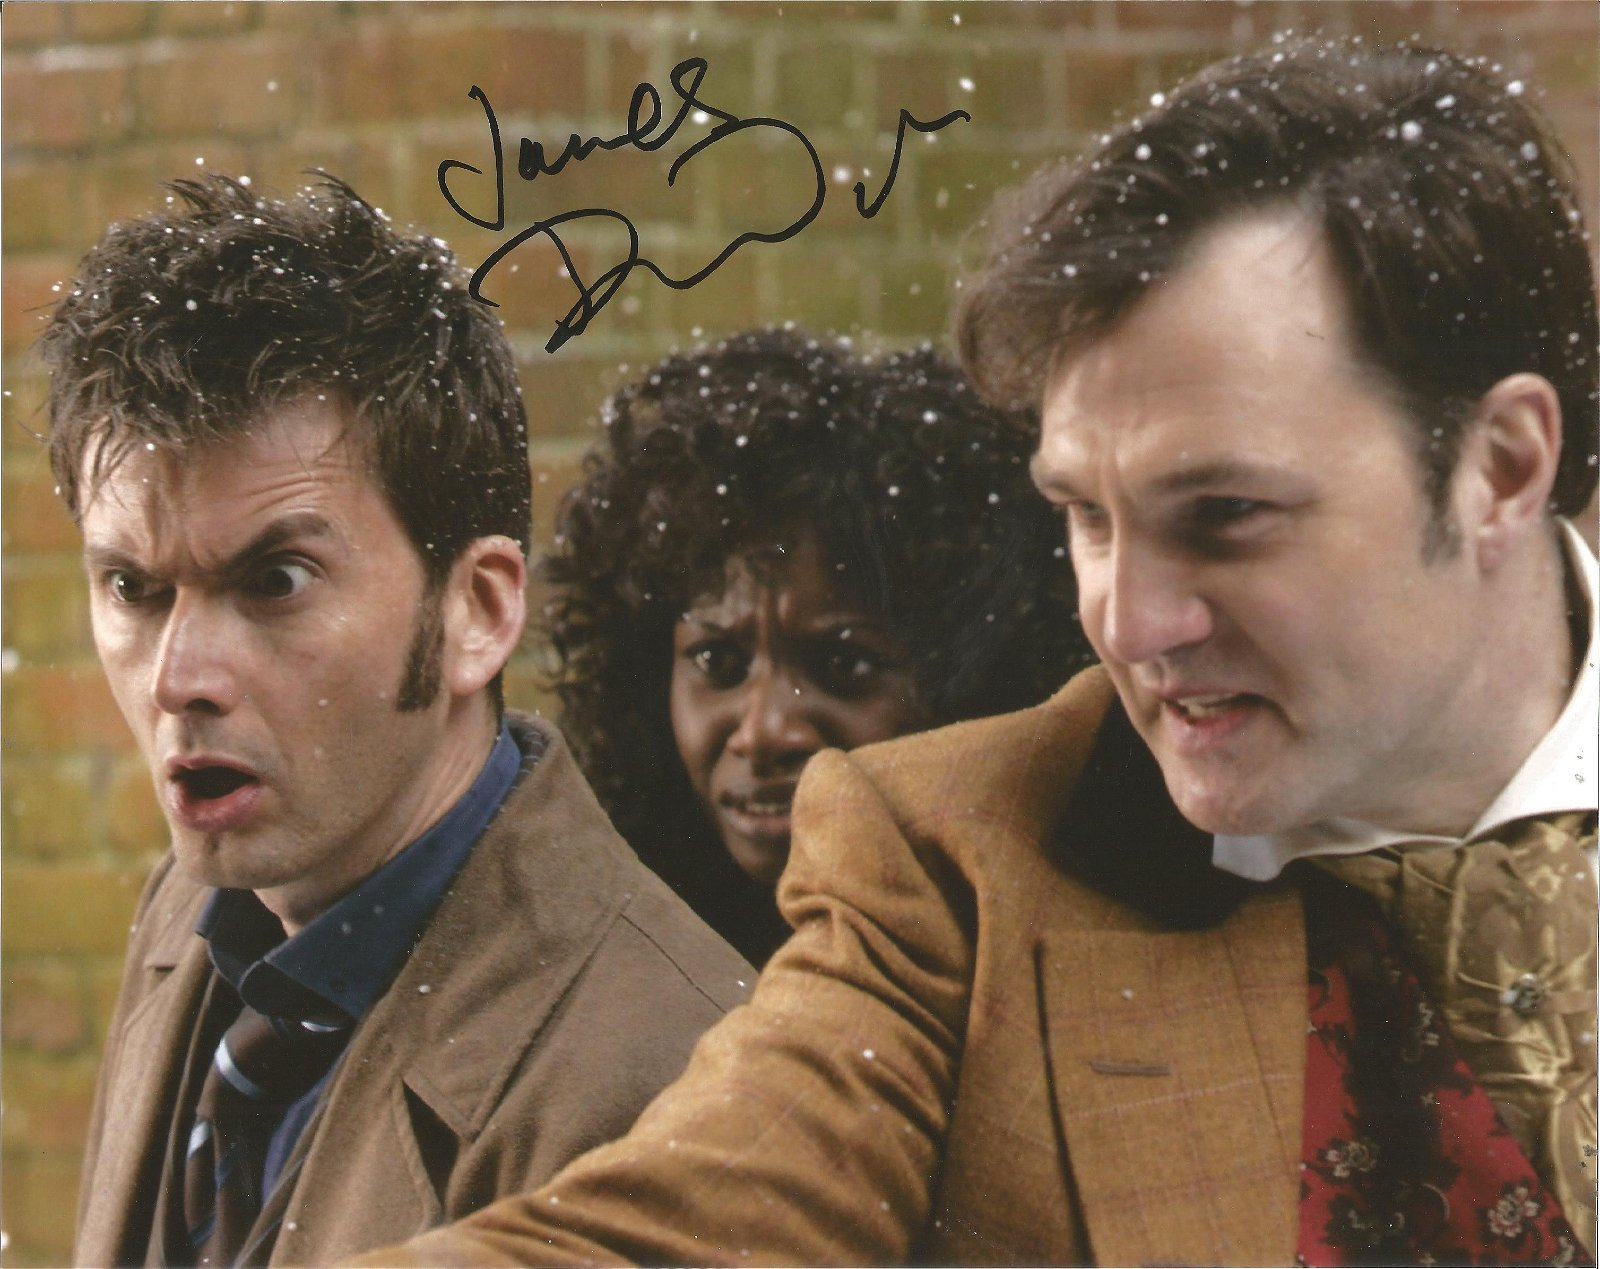 David Morrisey Actor Signed Doctor Who 8x10 Photo. Good